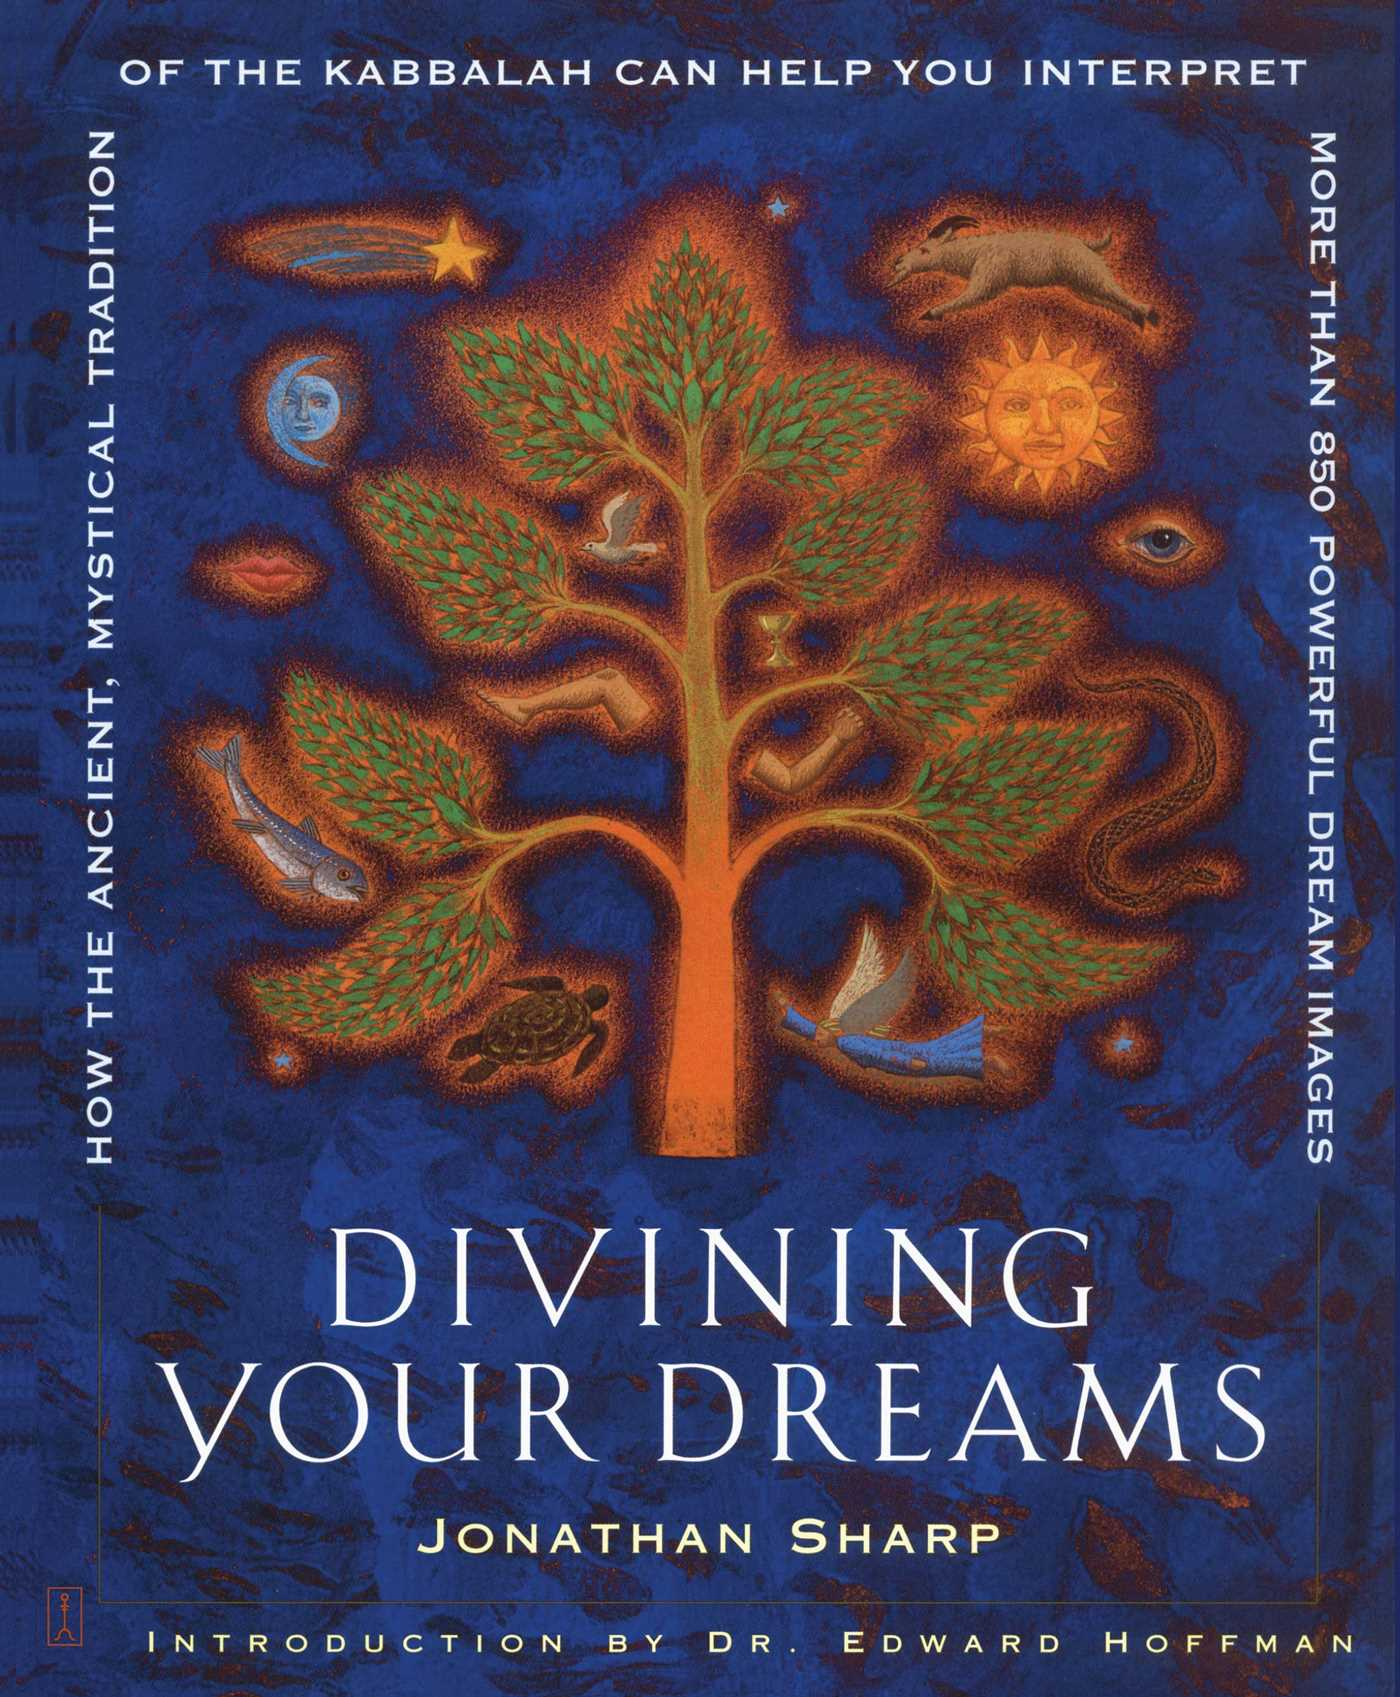 Divining-your-dreams-9780743229418_hr